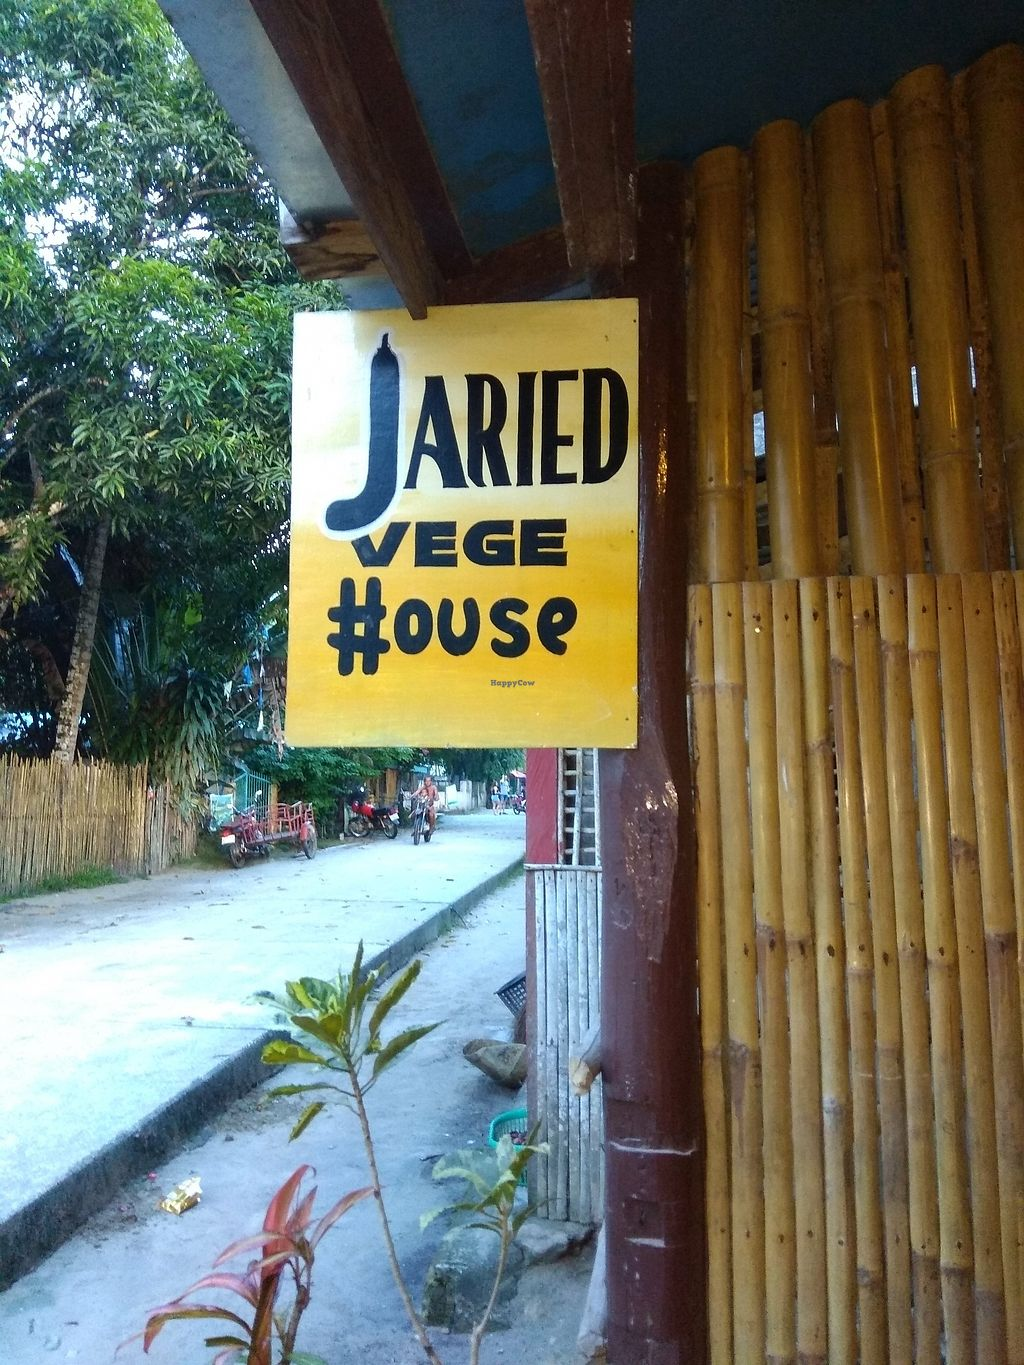 "Photo of Jaried Vege House  by <a href=""/members/profile/VincentVegan"">VincentVegan</a> <br/>Street sign <br/> August 7, 2017  - <a href='/contact/abuse/image/83783/290045'>Report</a>"